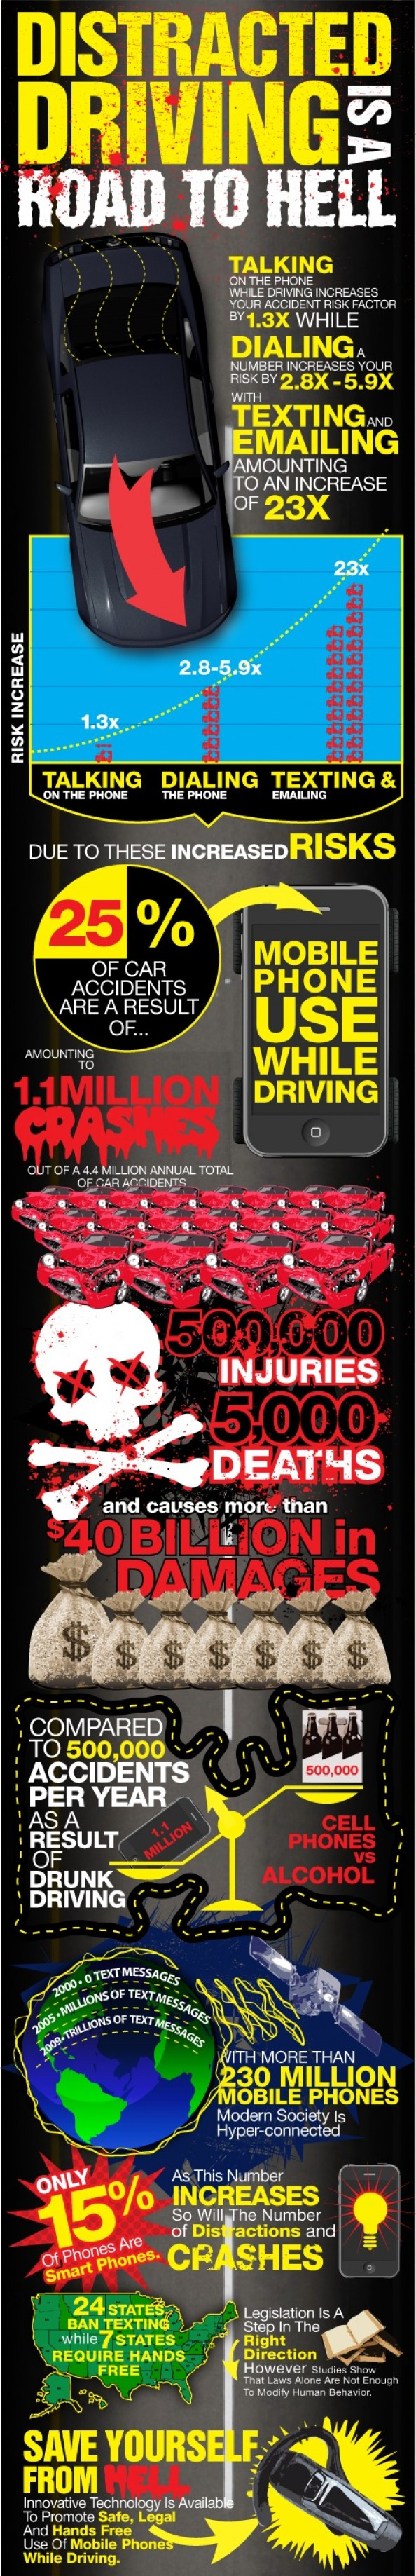 Cell phone use during driving: The road to hell